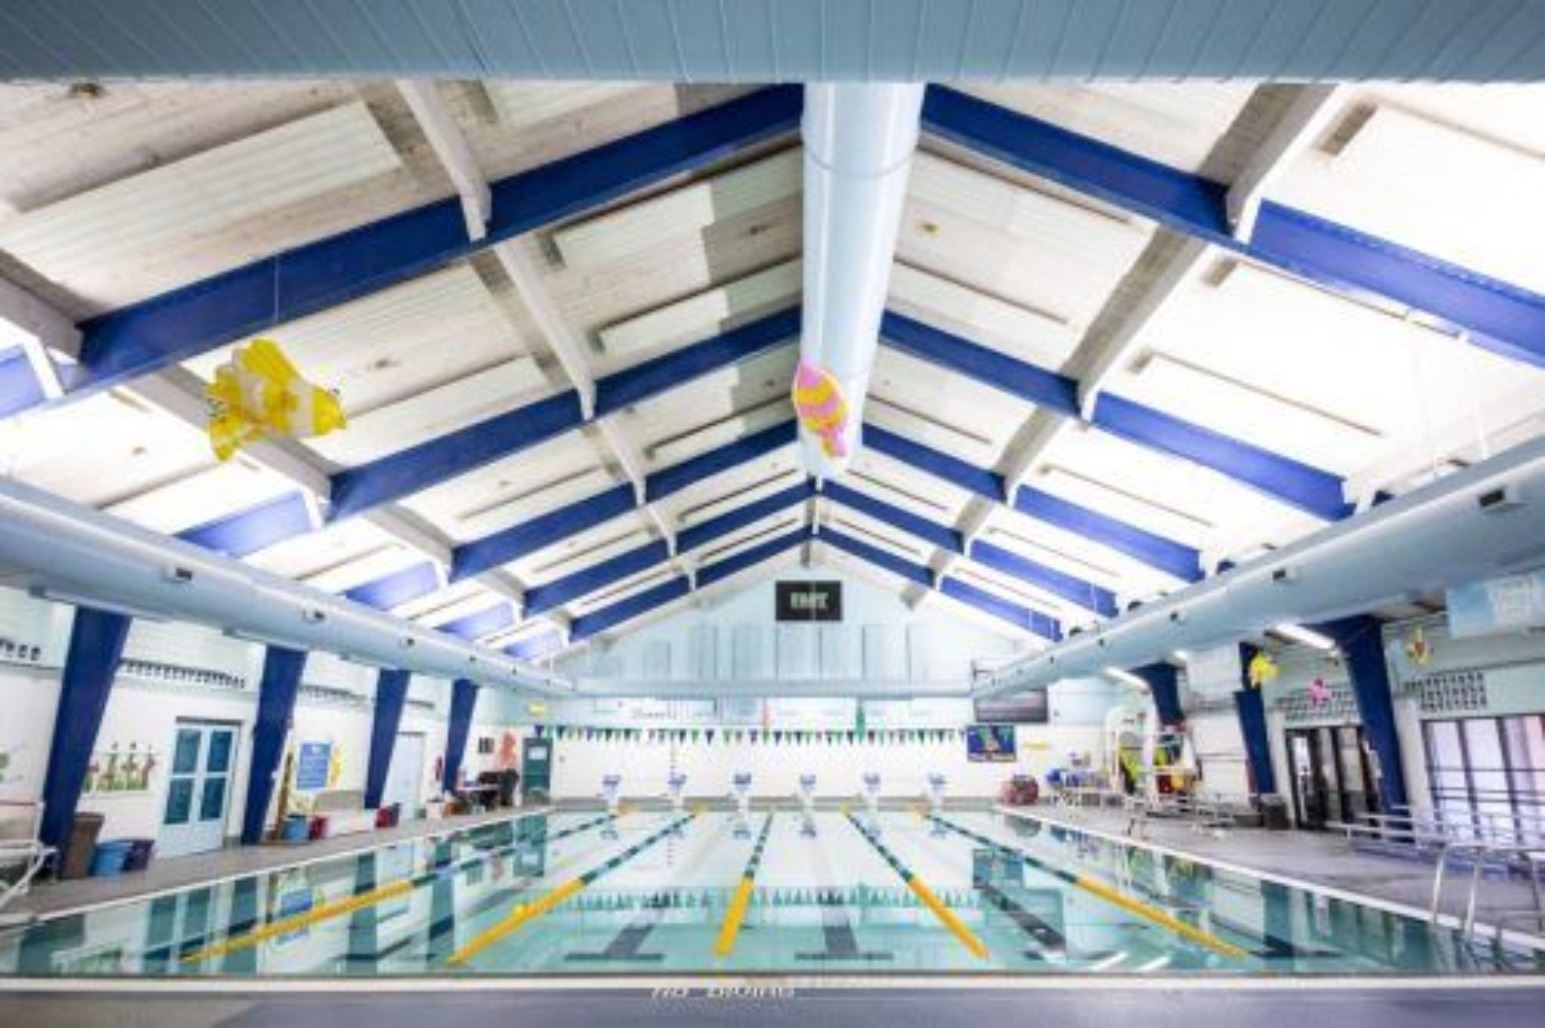 Interior of Fife Aquatic Center